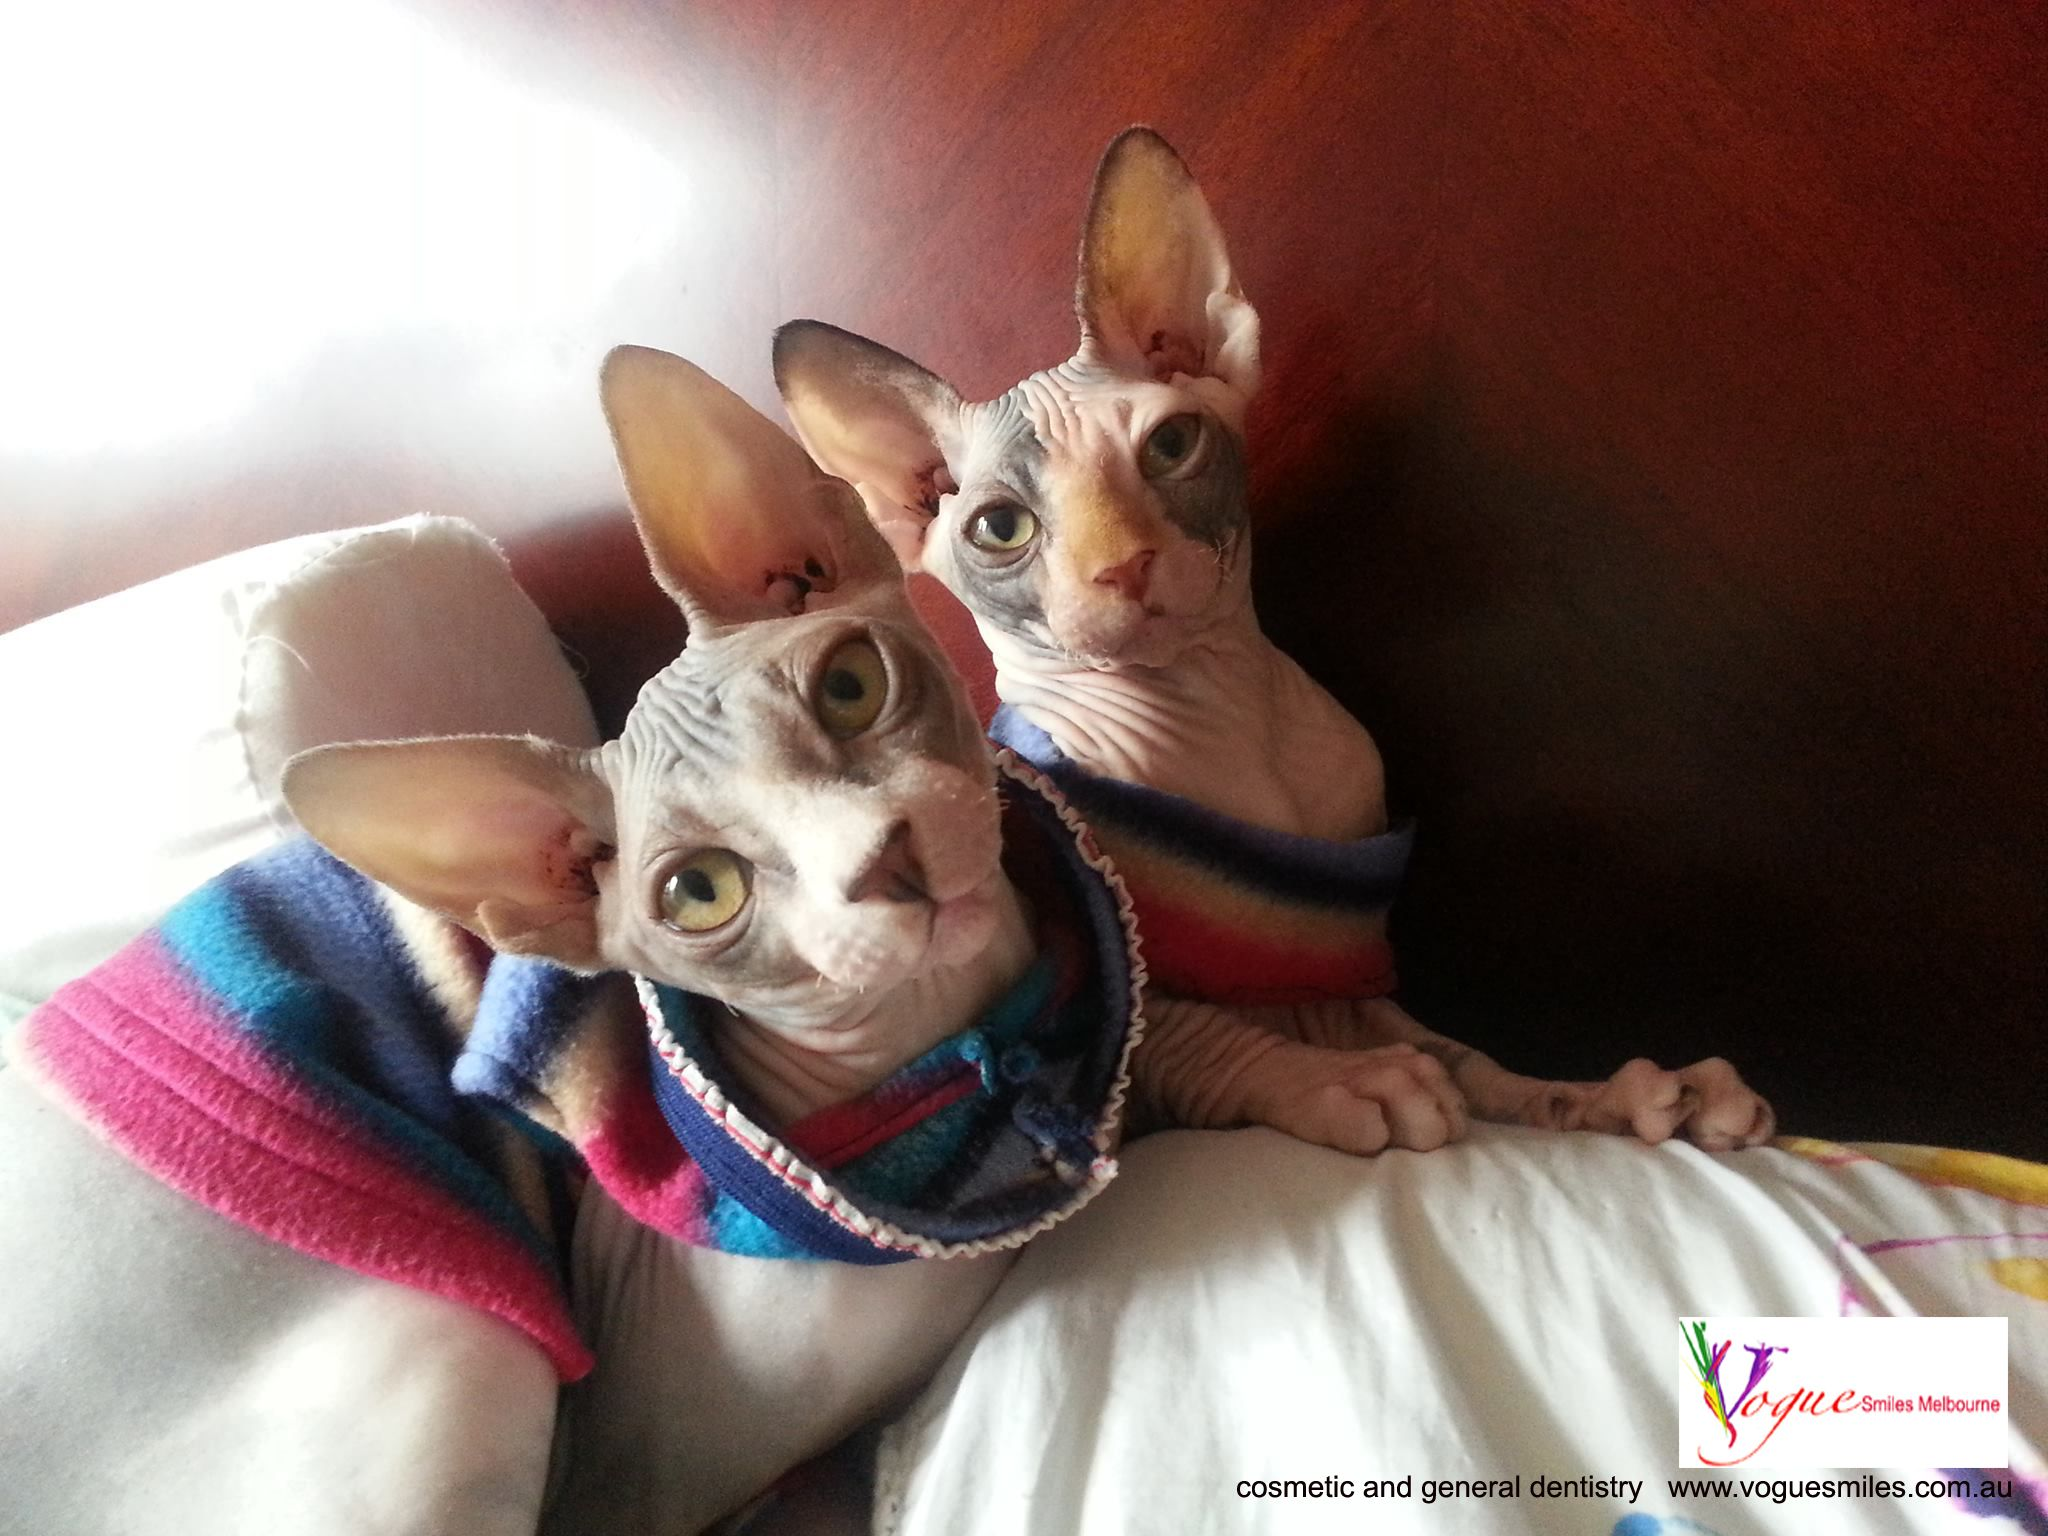 Zucky And Zooky My 4 Months Old Sphynx Kitten In Bed Kittens In Costumes Hairless Cat Cute Cats